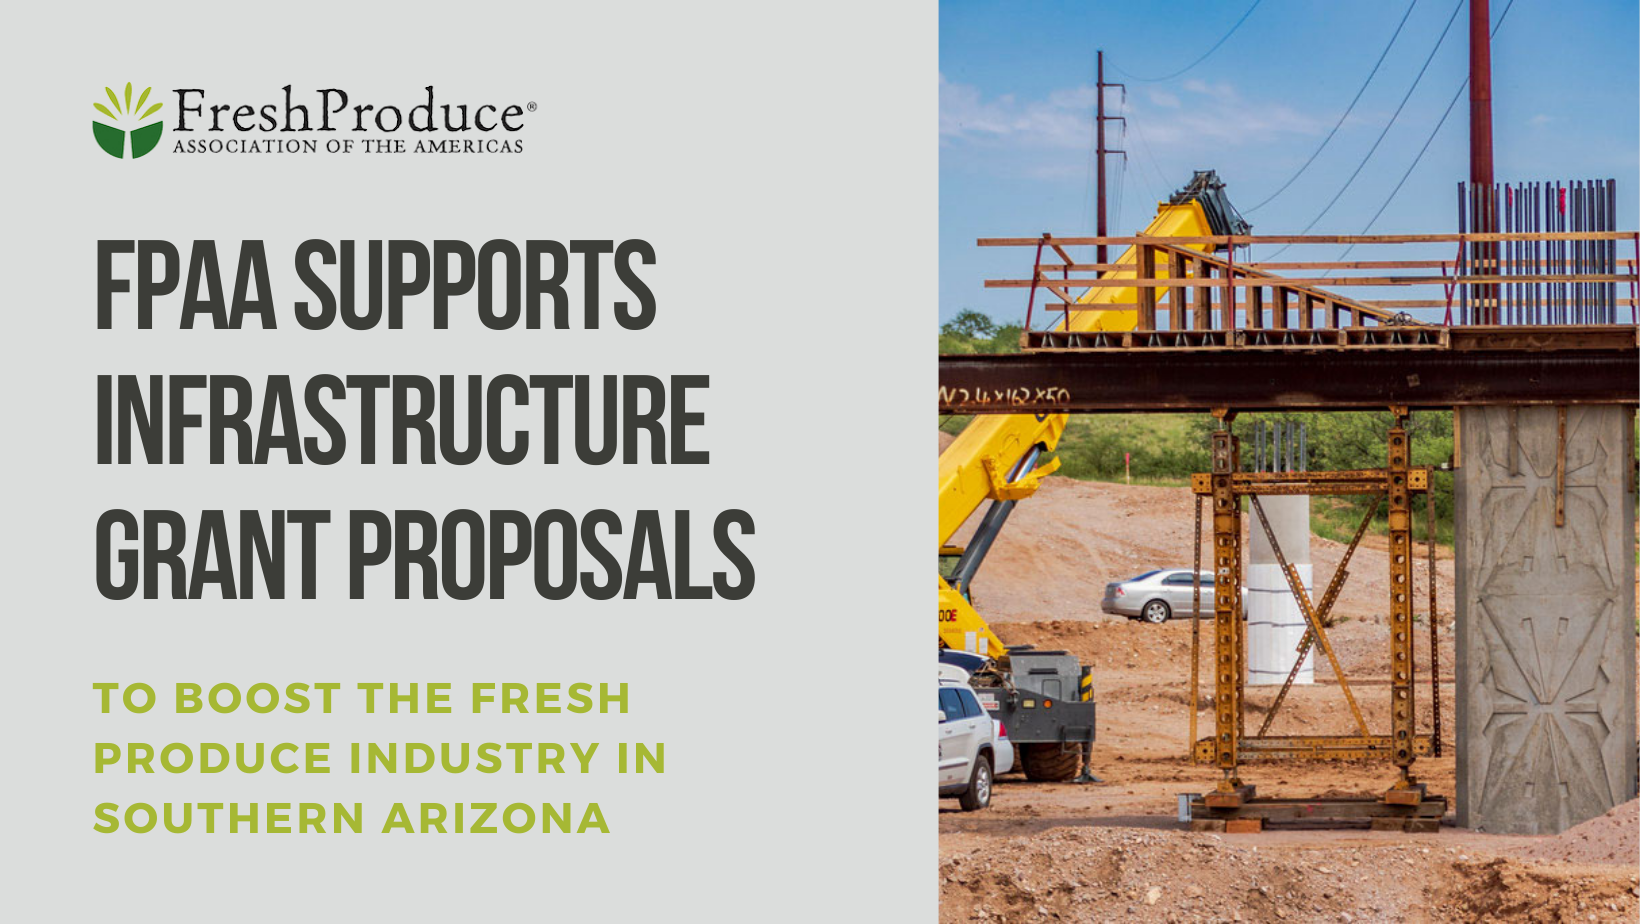 FPAA Supports Infrastructure Grant Proposals to Boost The Fresh Produce Industry in Southern Arizona